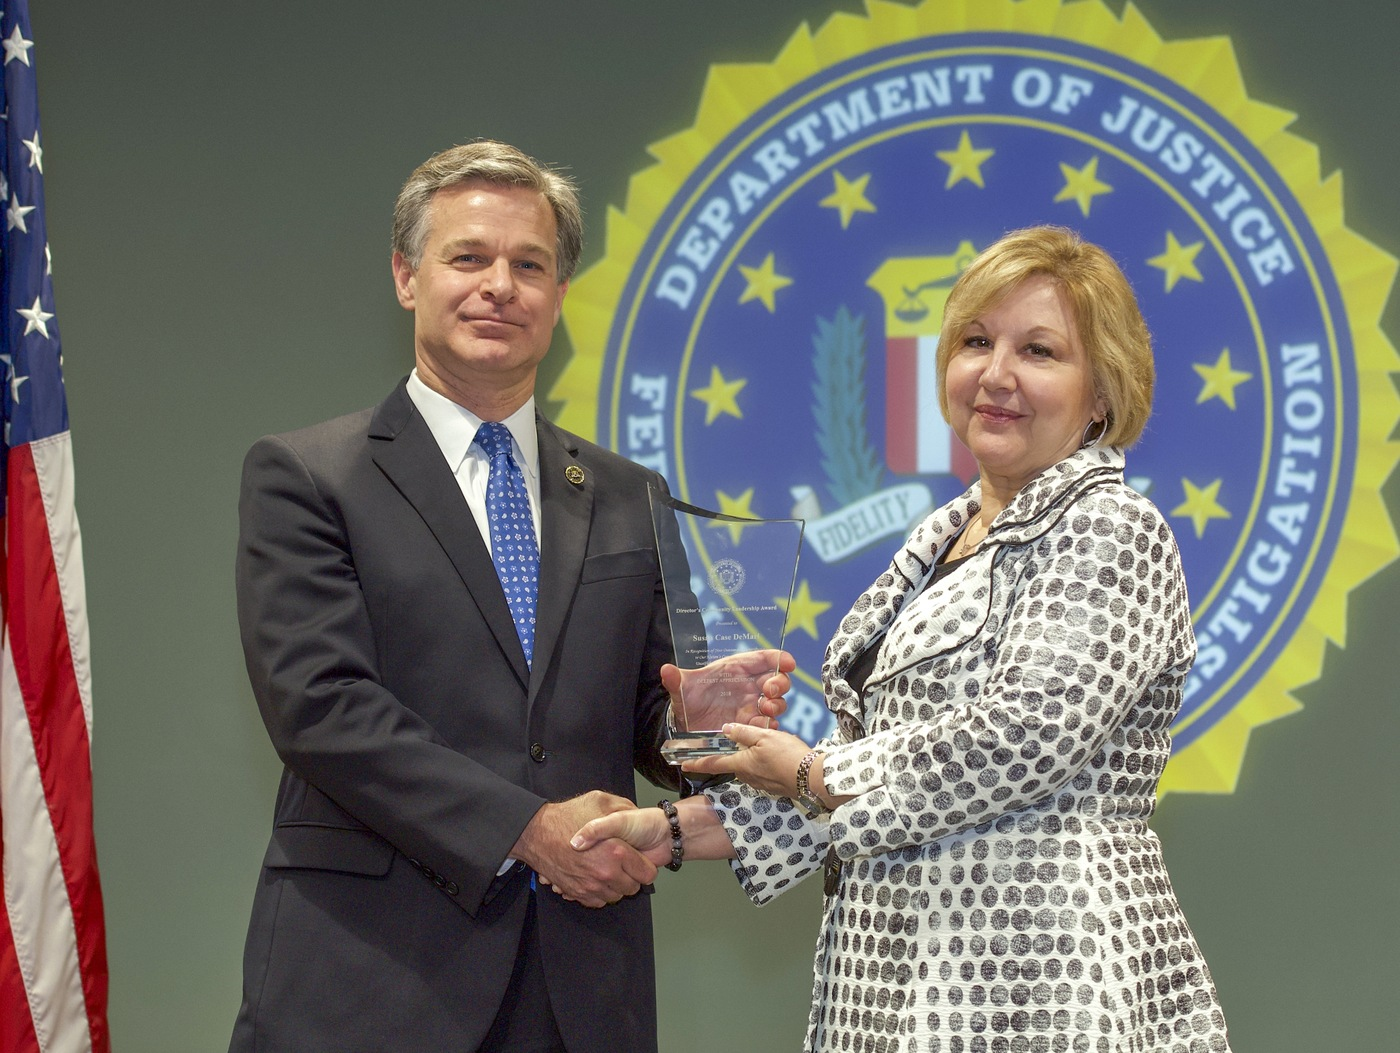 FBI Director Christopher Wray presents Albany Division recipient Susan Case DeMari with the Director's Community Leadership Award (DCLA) at a ceremony at FBI Headquarters on May 3, 2019.